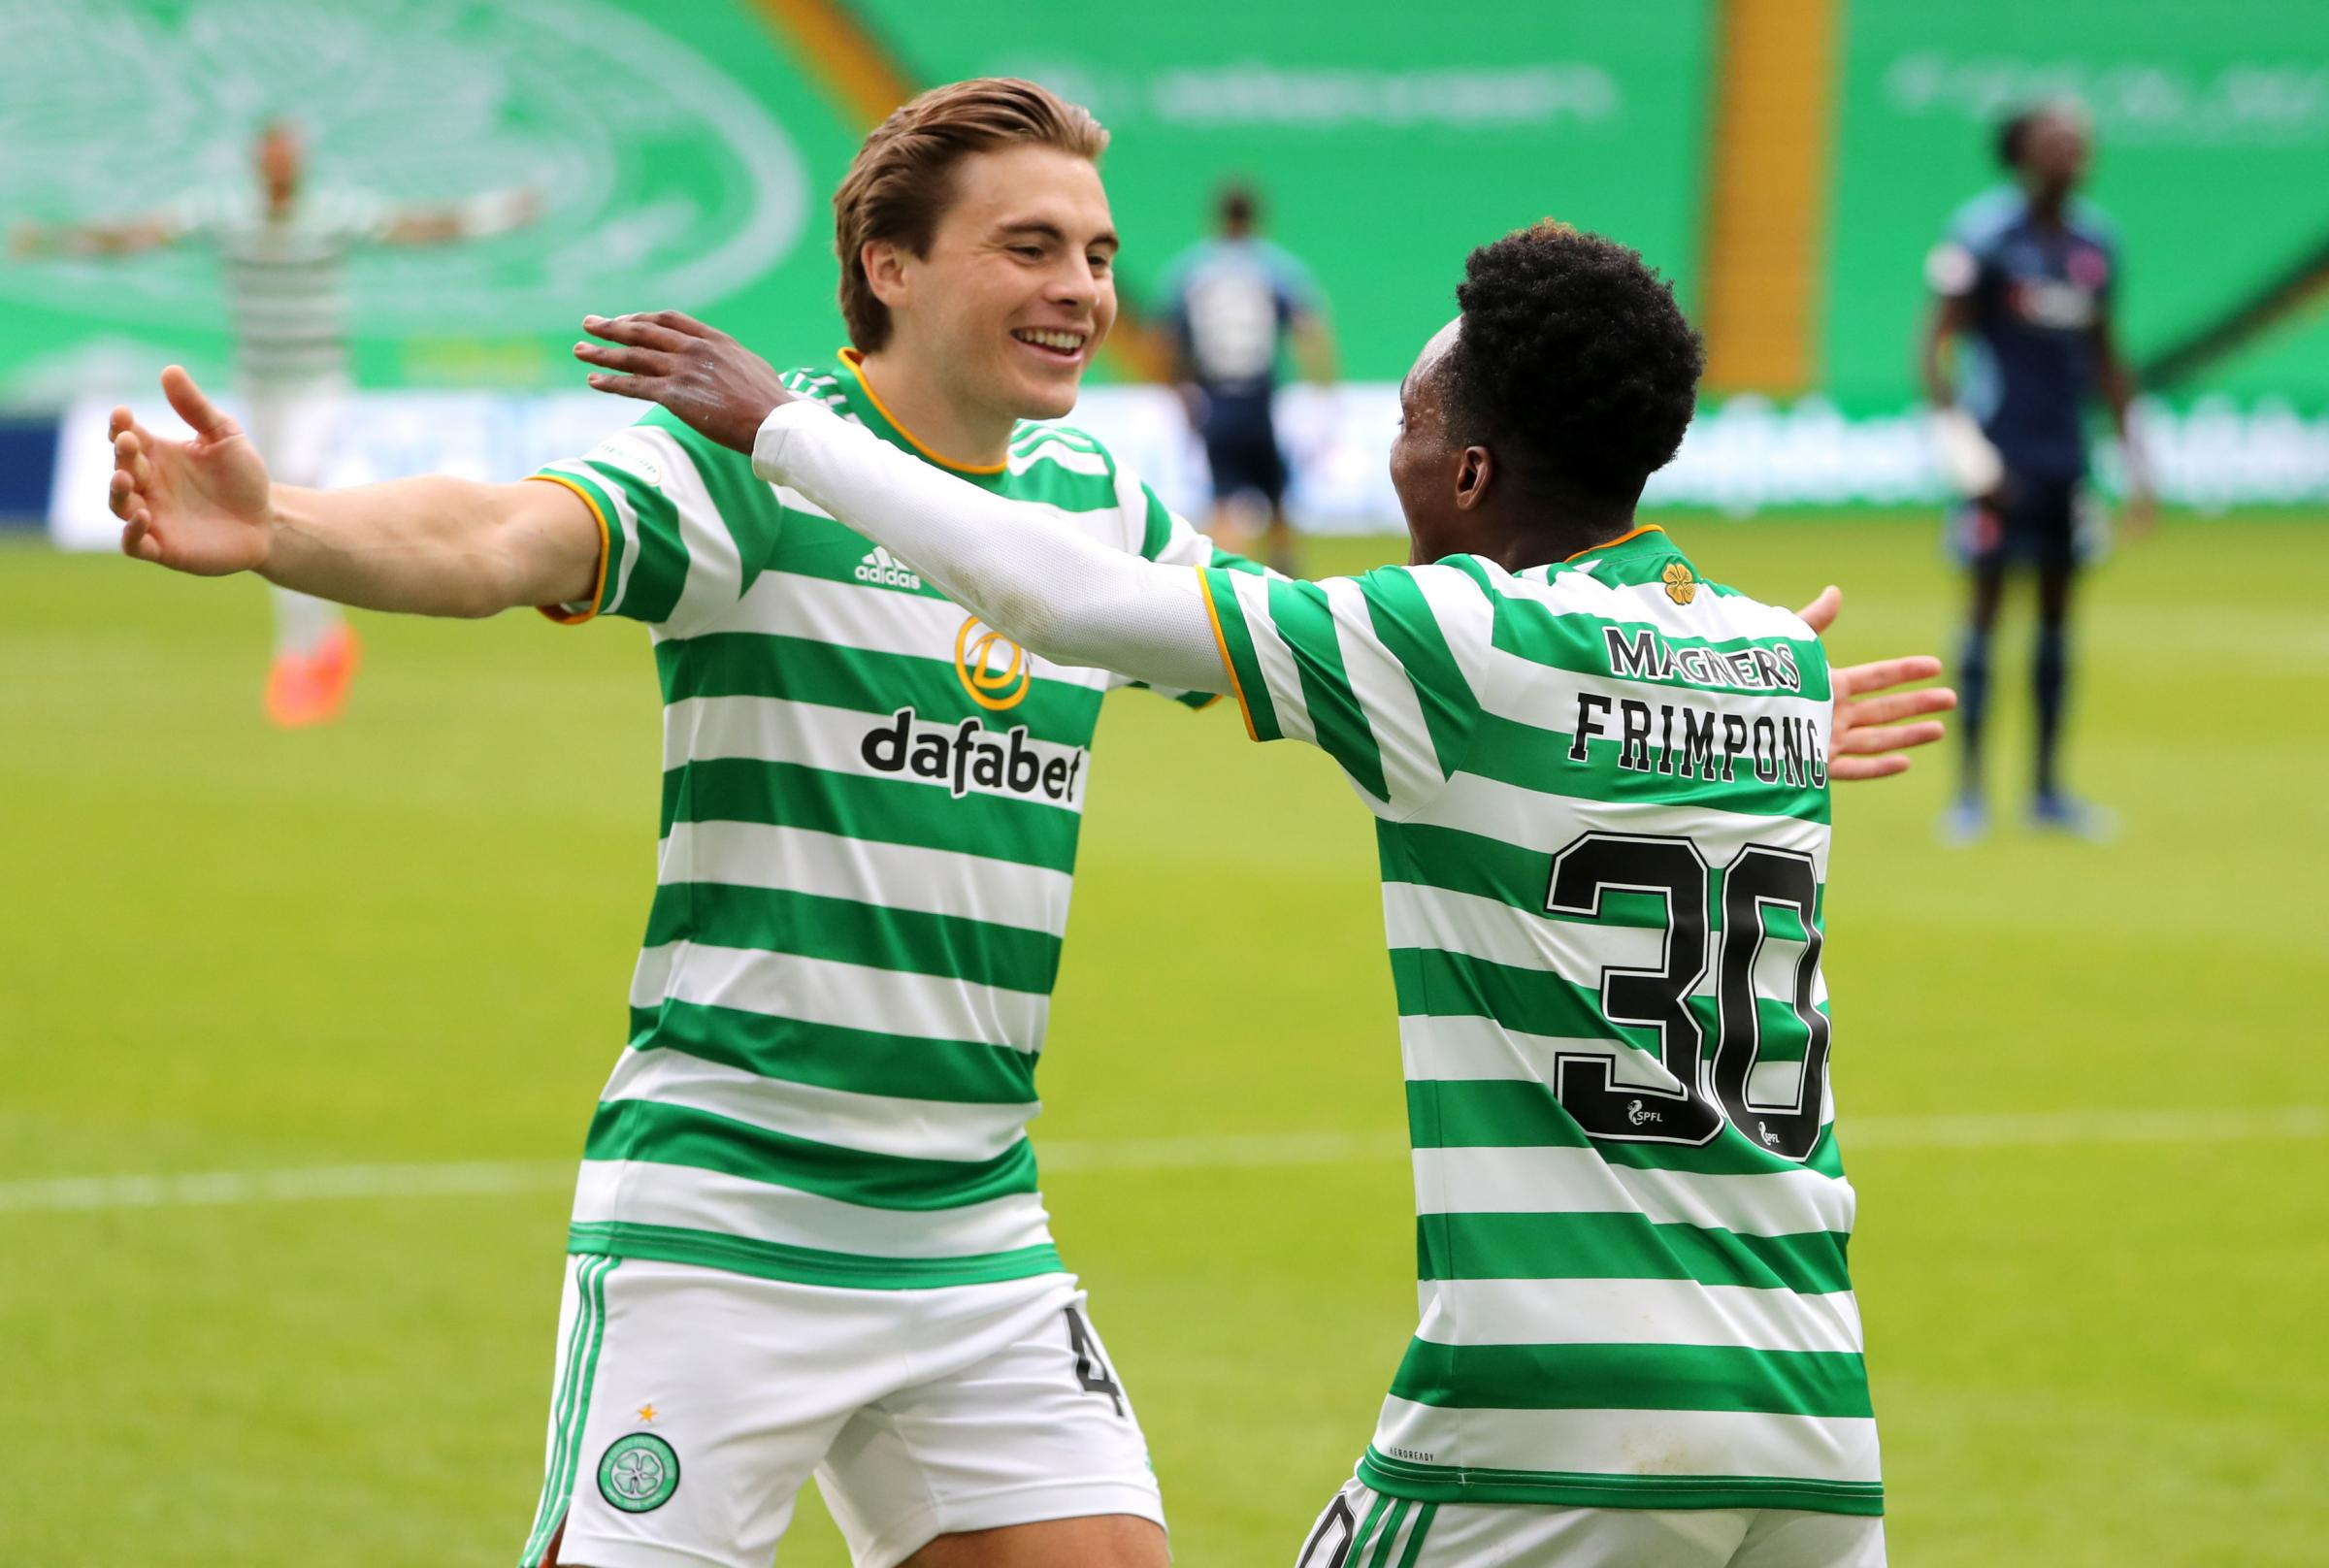 Celtic 2-1 Hamilton LIVE: Martin pulls one back after Edouard and Frimpong open scoring